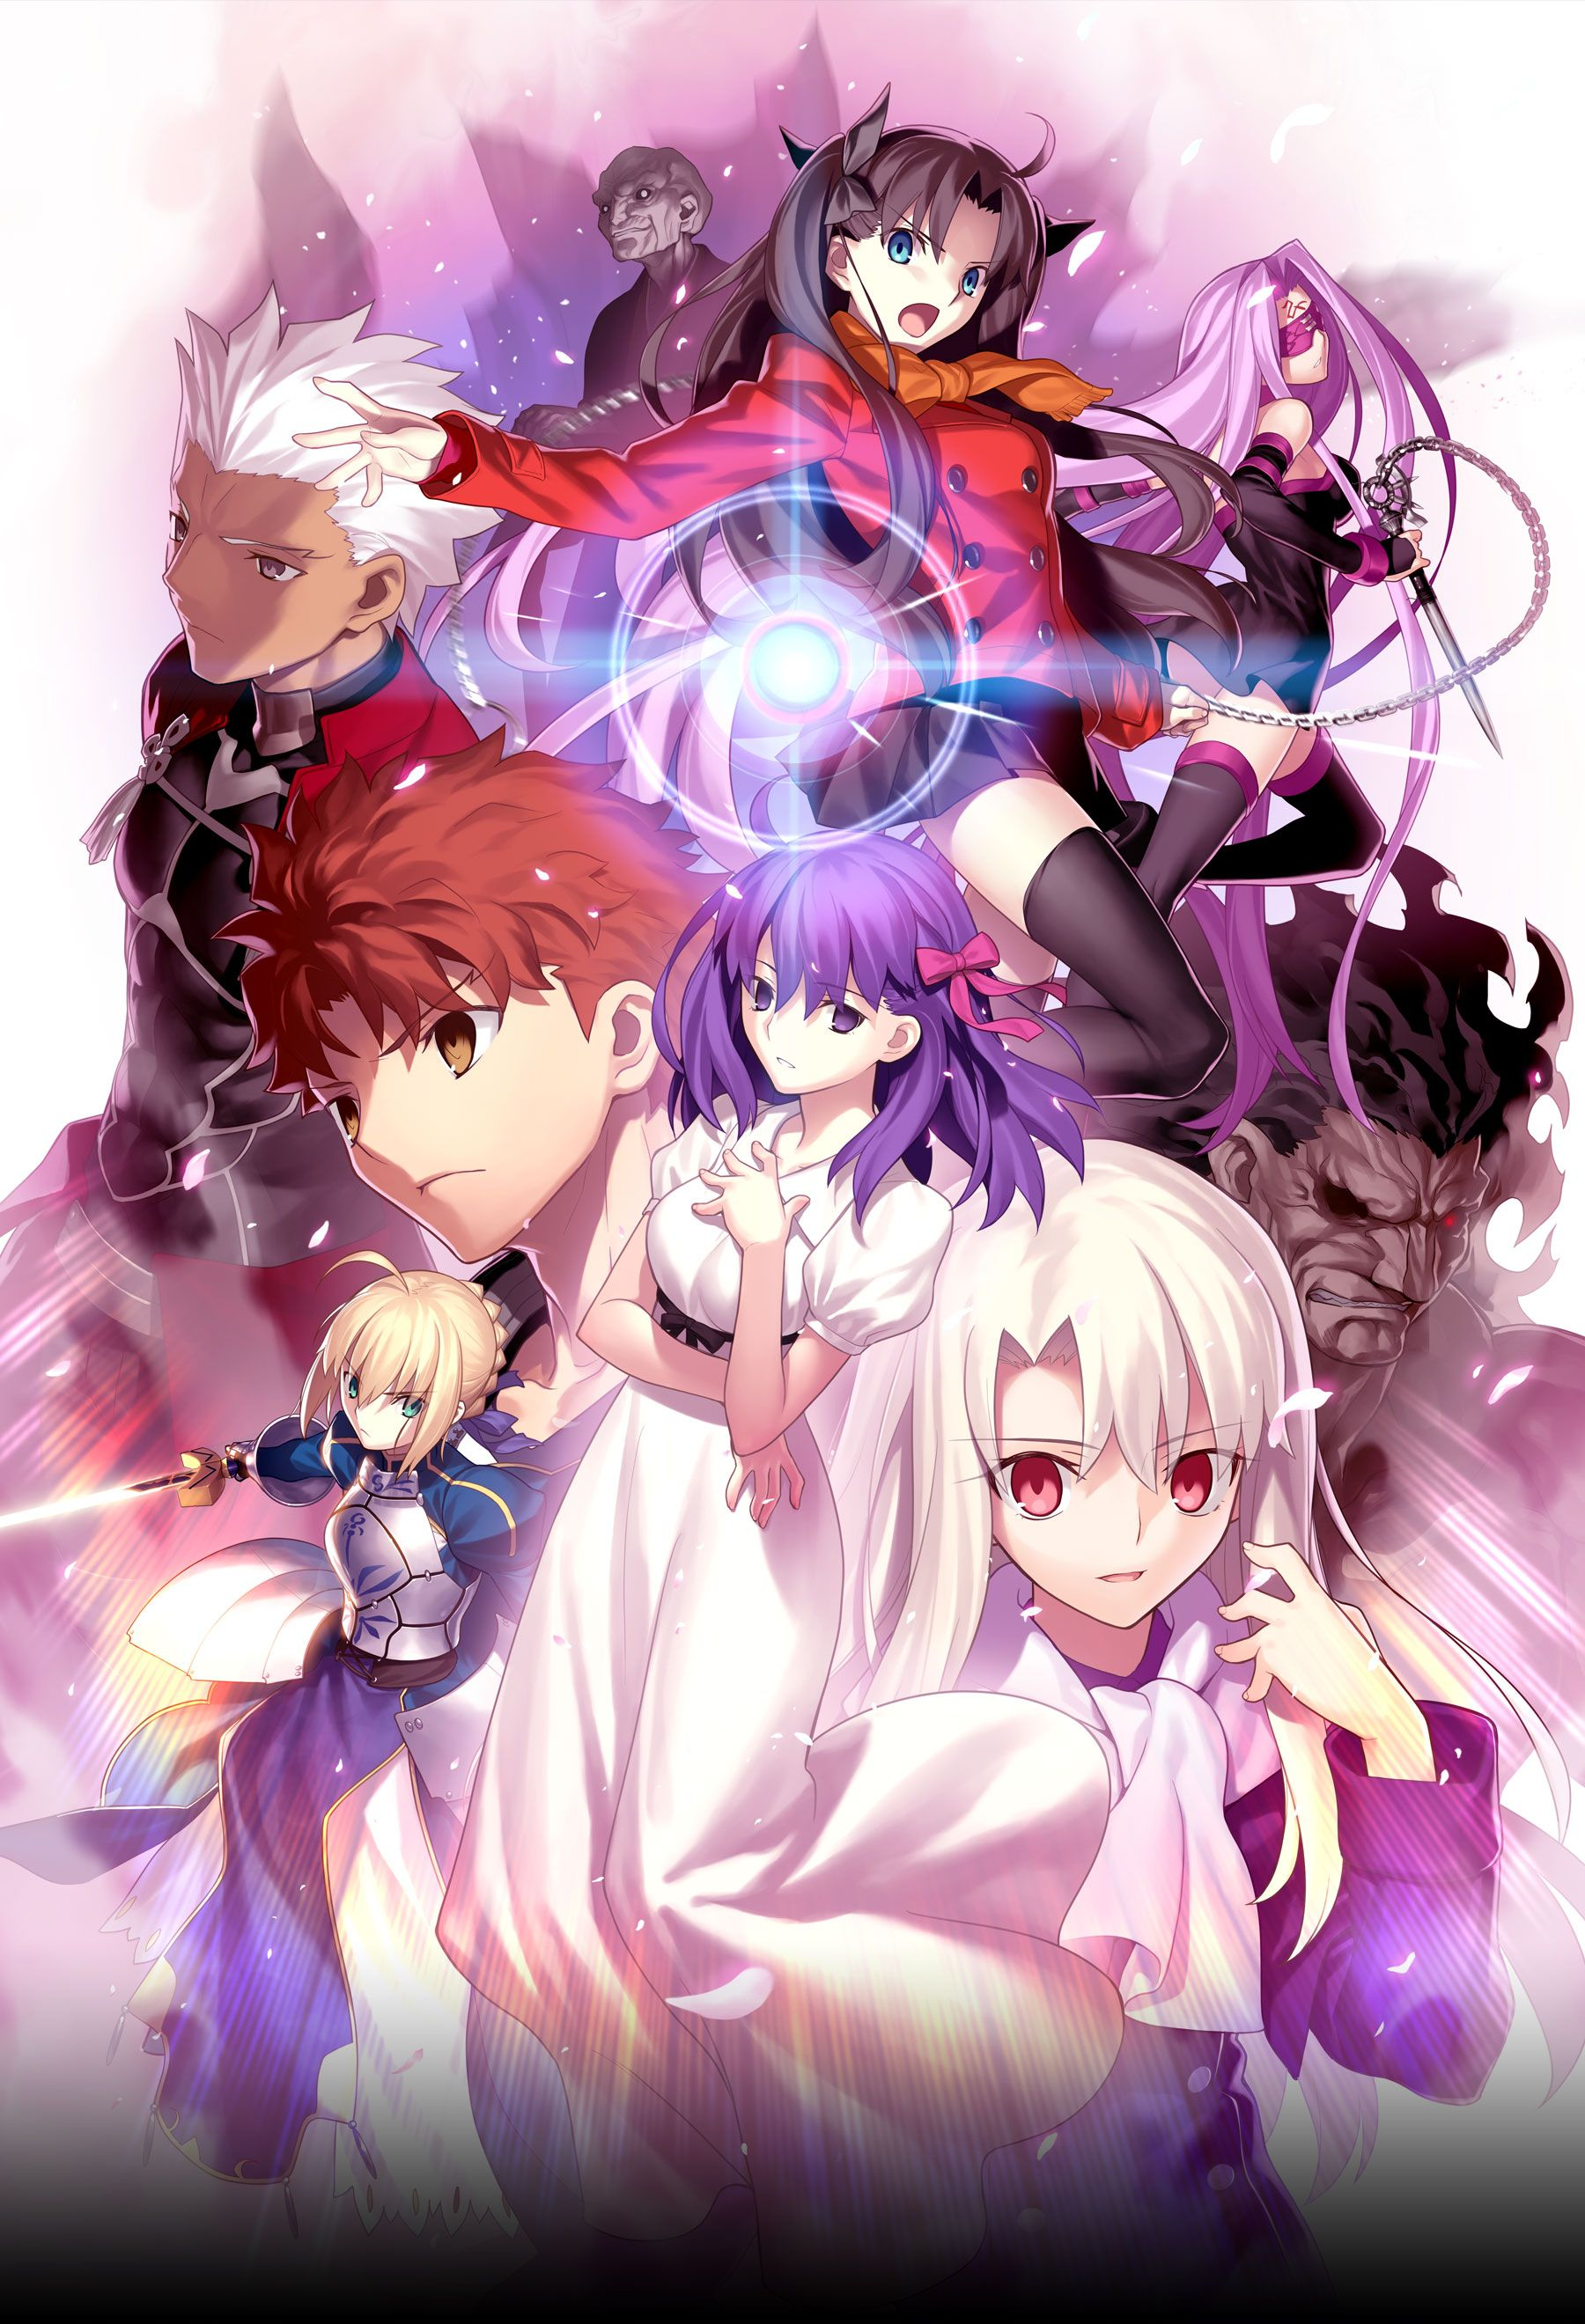 [VIDEO] Fate/Stay Night: Heaven's Feel's first film reveals new trailer and visual - http://sgcafe.com/2017/07/video-fatestay-night-heavens-feels-first-film-reveals-new-trailer-visual/